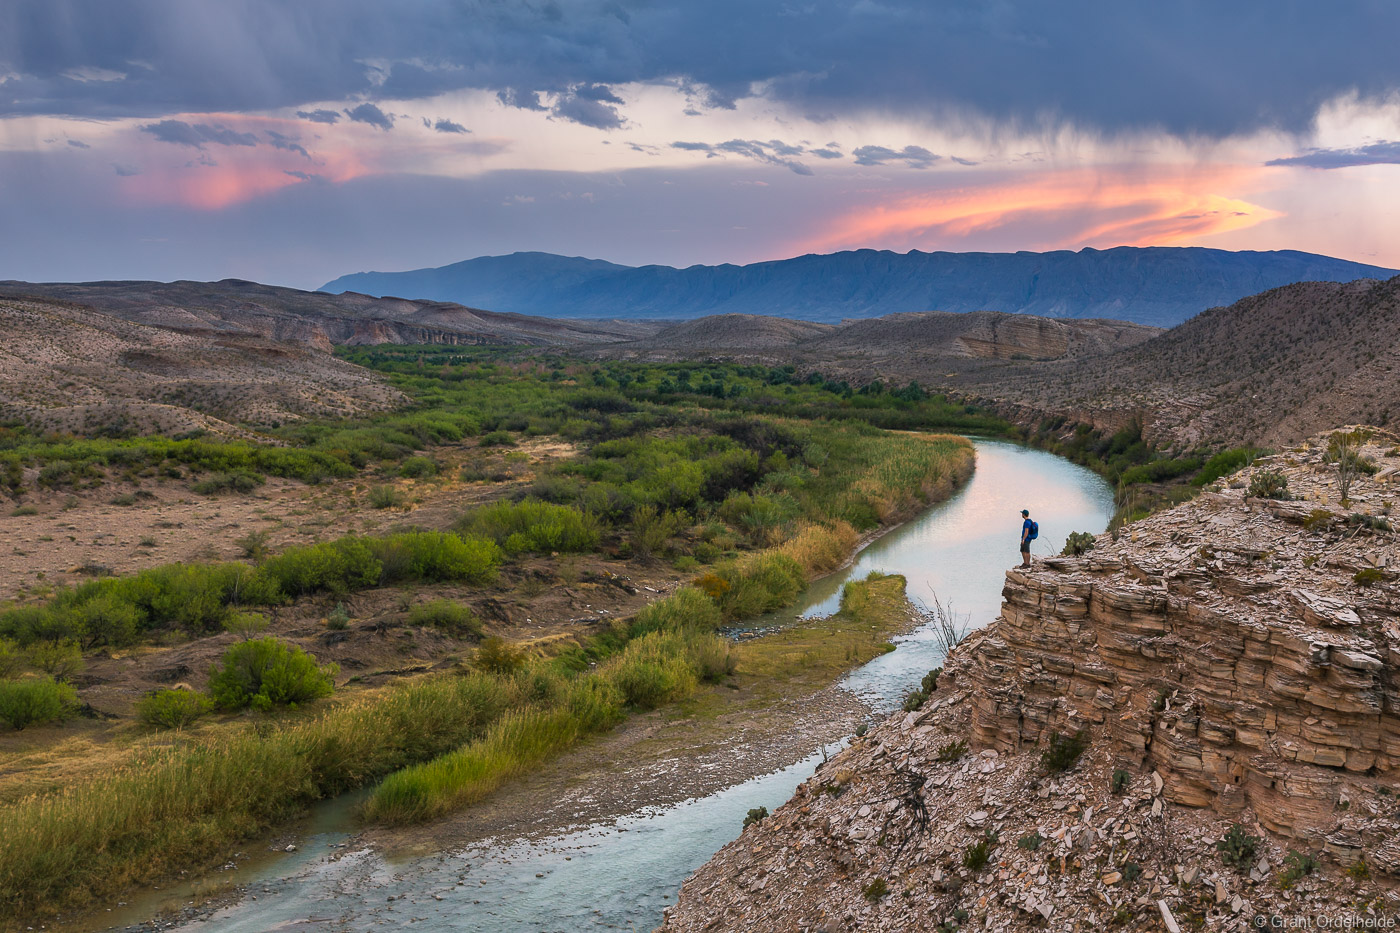 A hiker looks out into Mexico from above the Rio Grande river in Big Bend National Park.